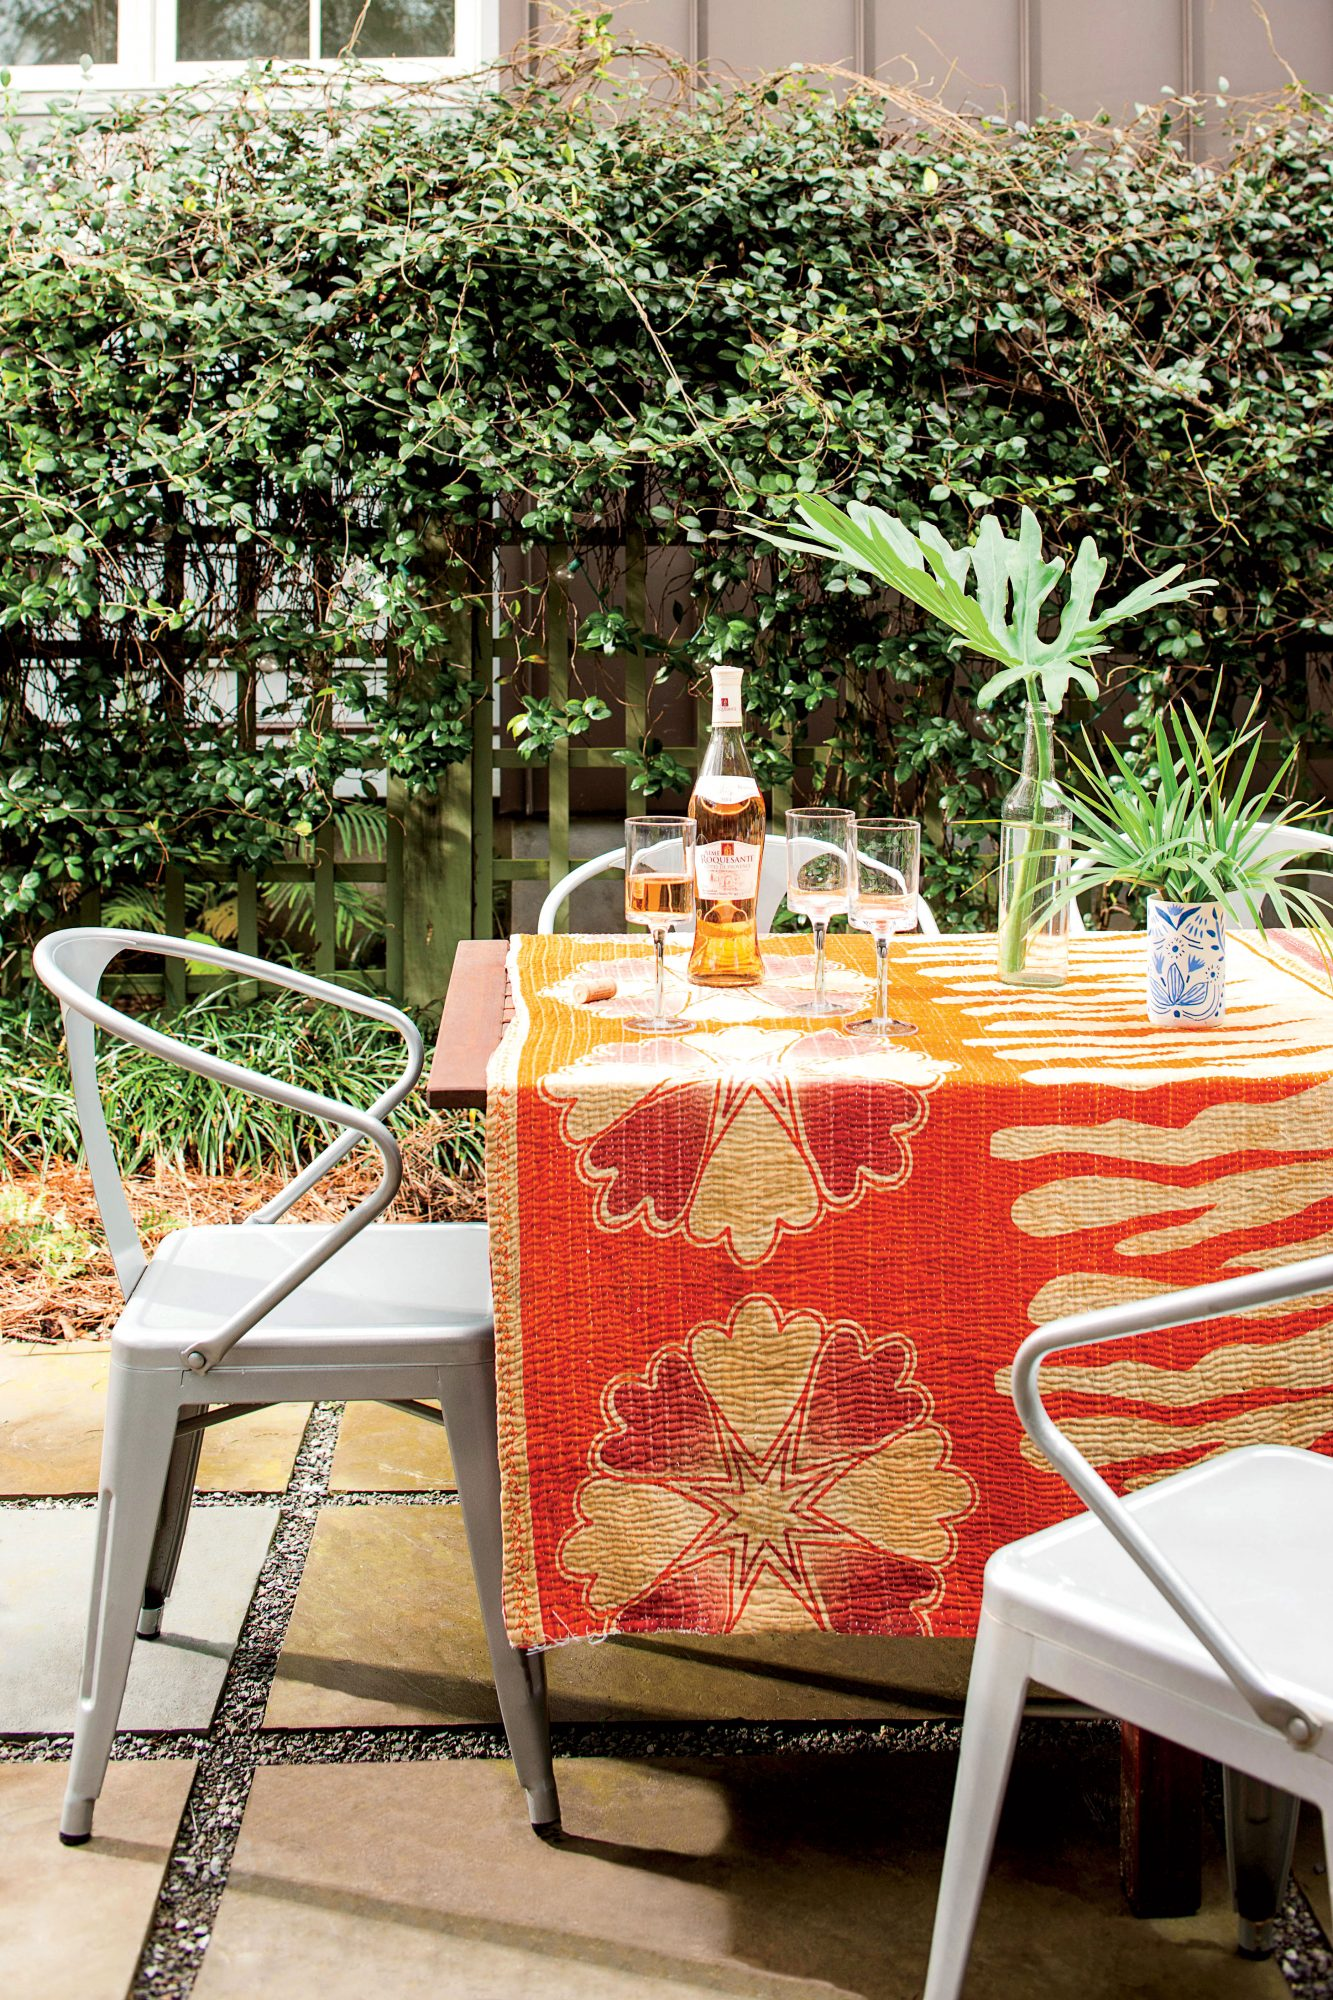 A Charleston Single House: Dining Al Fresco